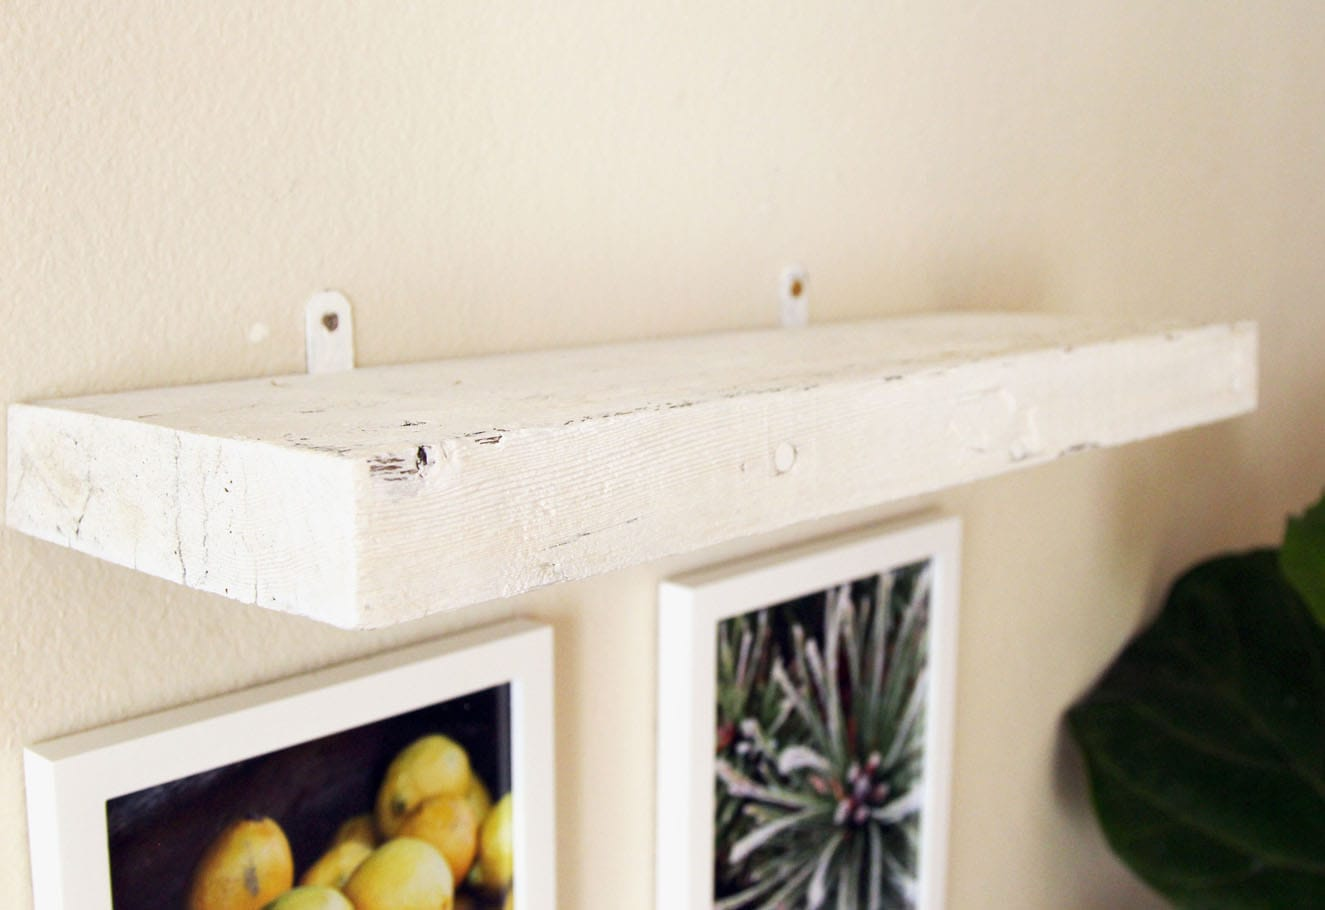 easy faux diy floating shelves minutes piece rainbow wall shelf apieceofrainbow drywall screw the brackets and onto because there are only tiny bits showing very each hide them